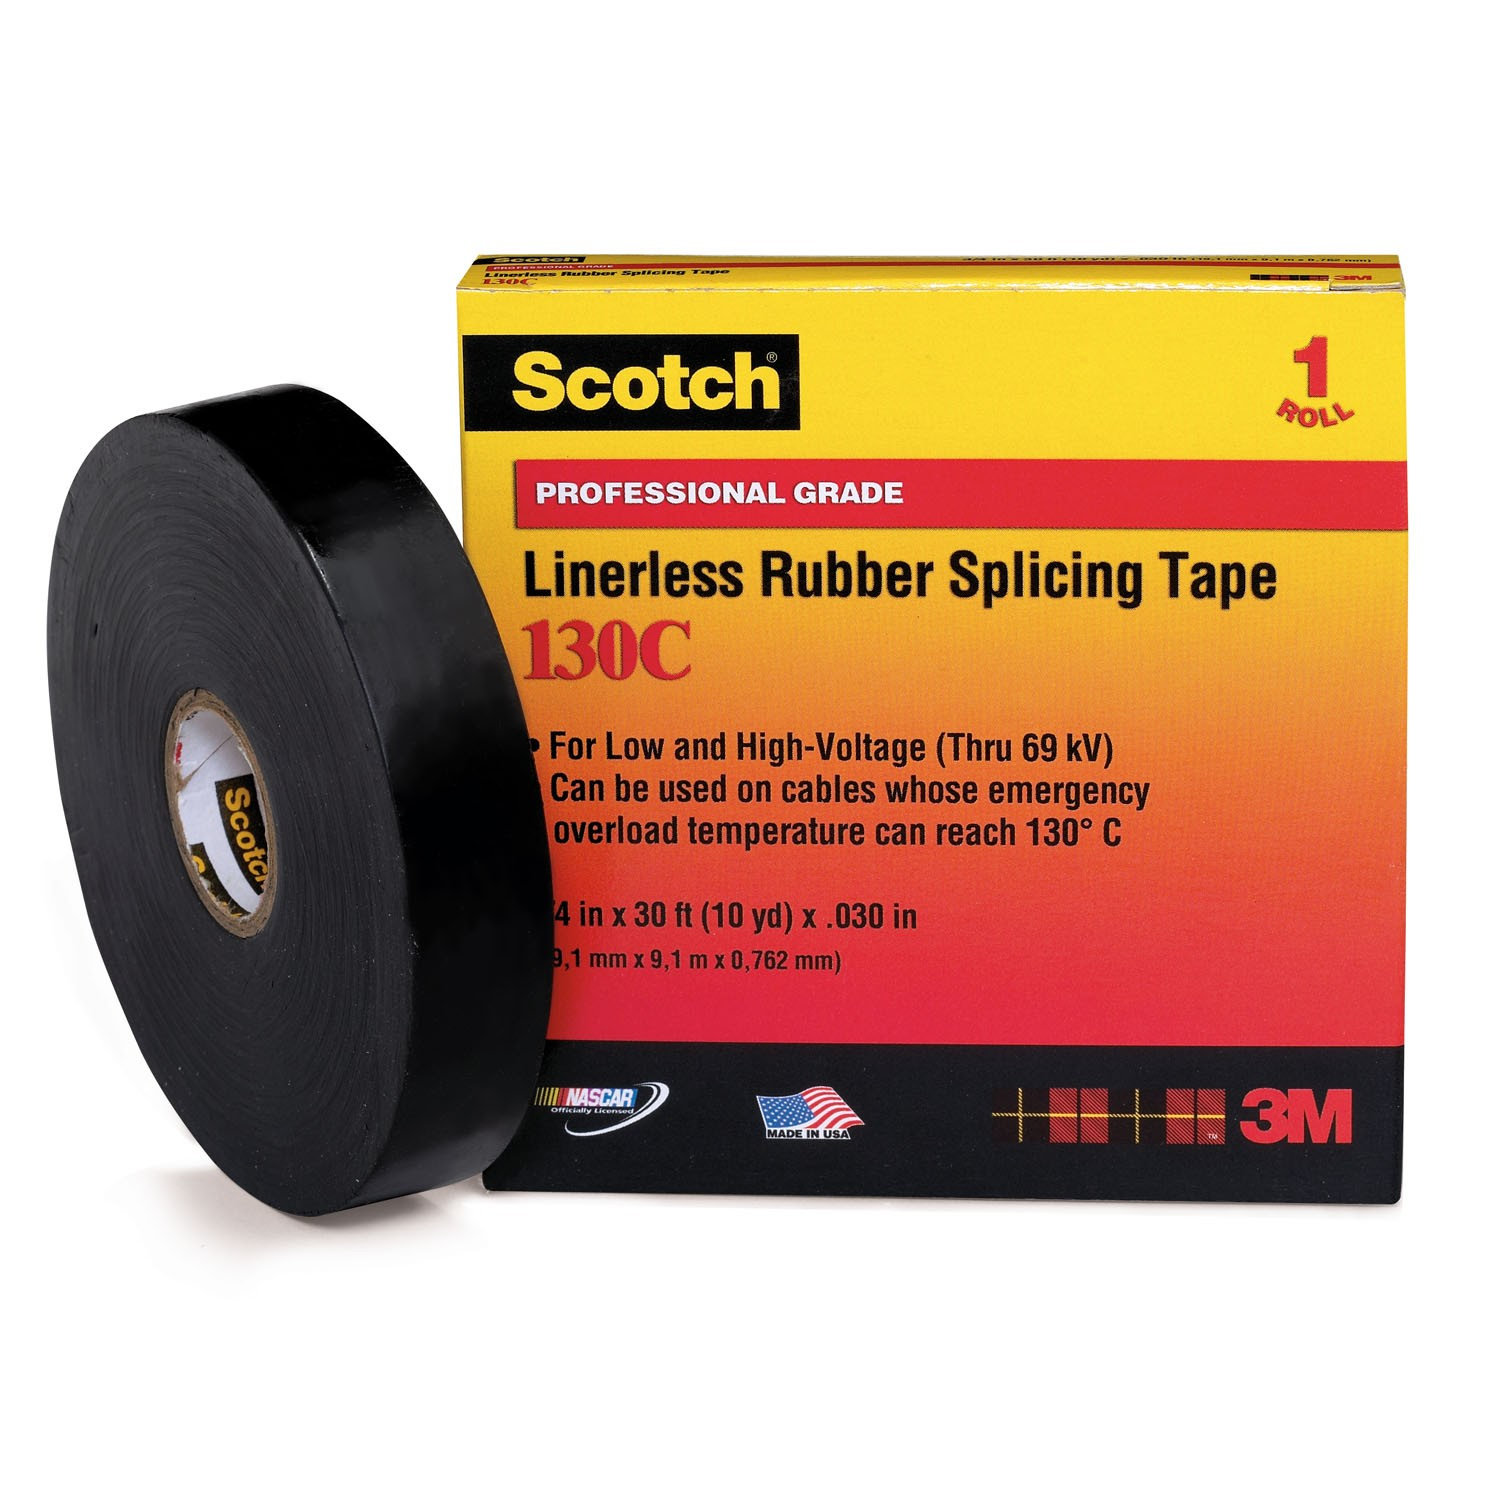 Rubber Splicing Tape Isolasi 3m Scouth 23 Spicing Scotch Black Ethylene Propylene Electrical Insulation 1500x1500